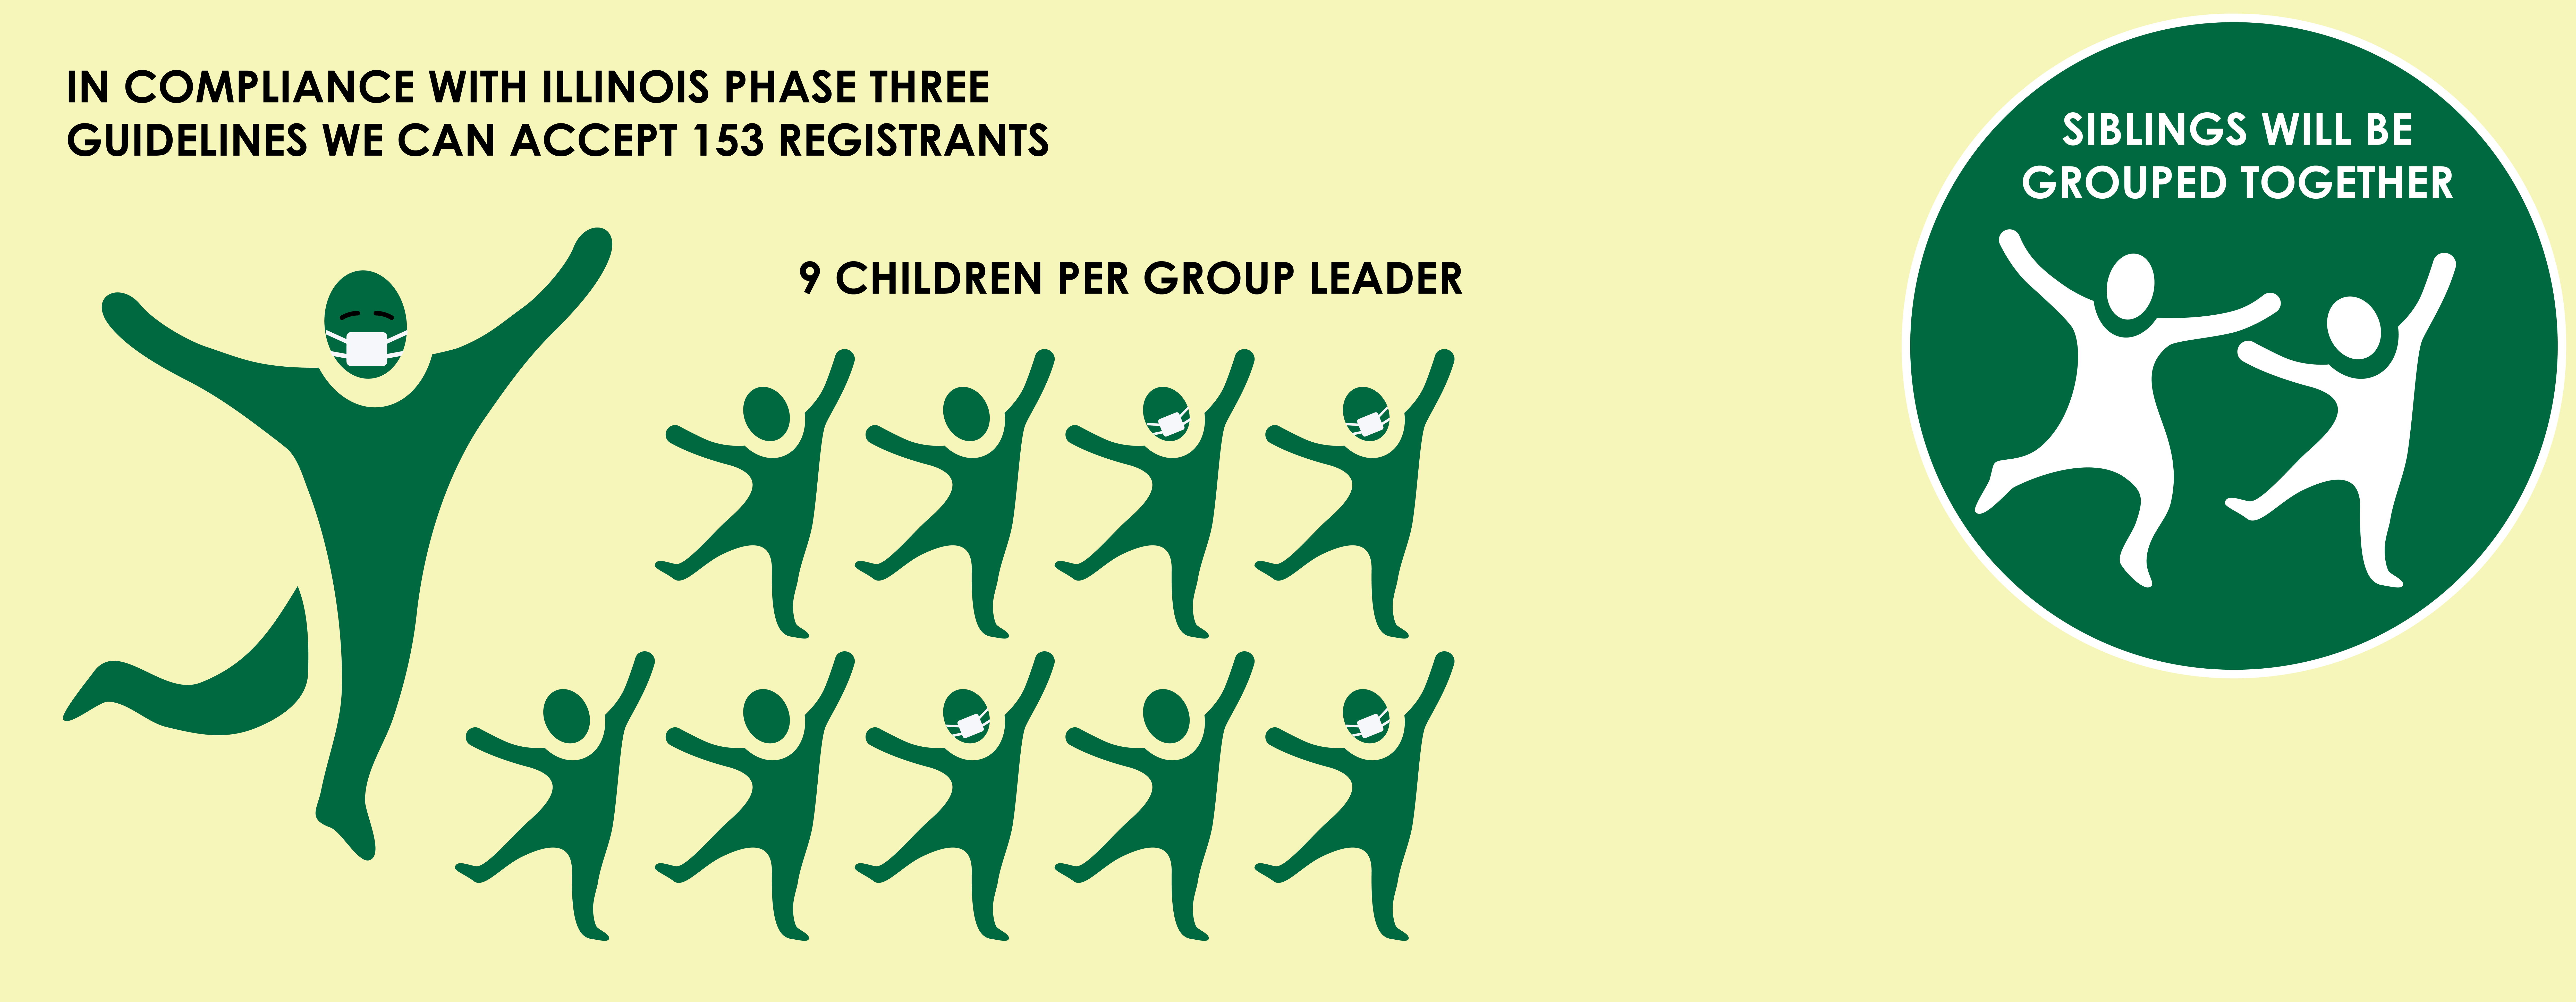 9 children per group leader. Siblings will be grouped together.